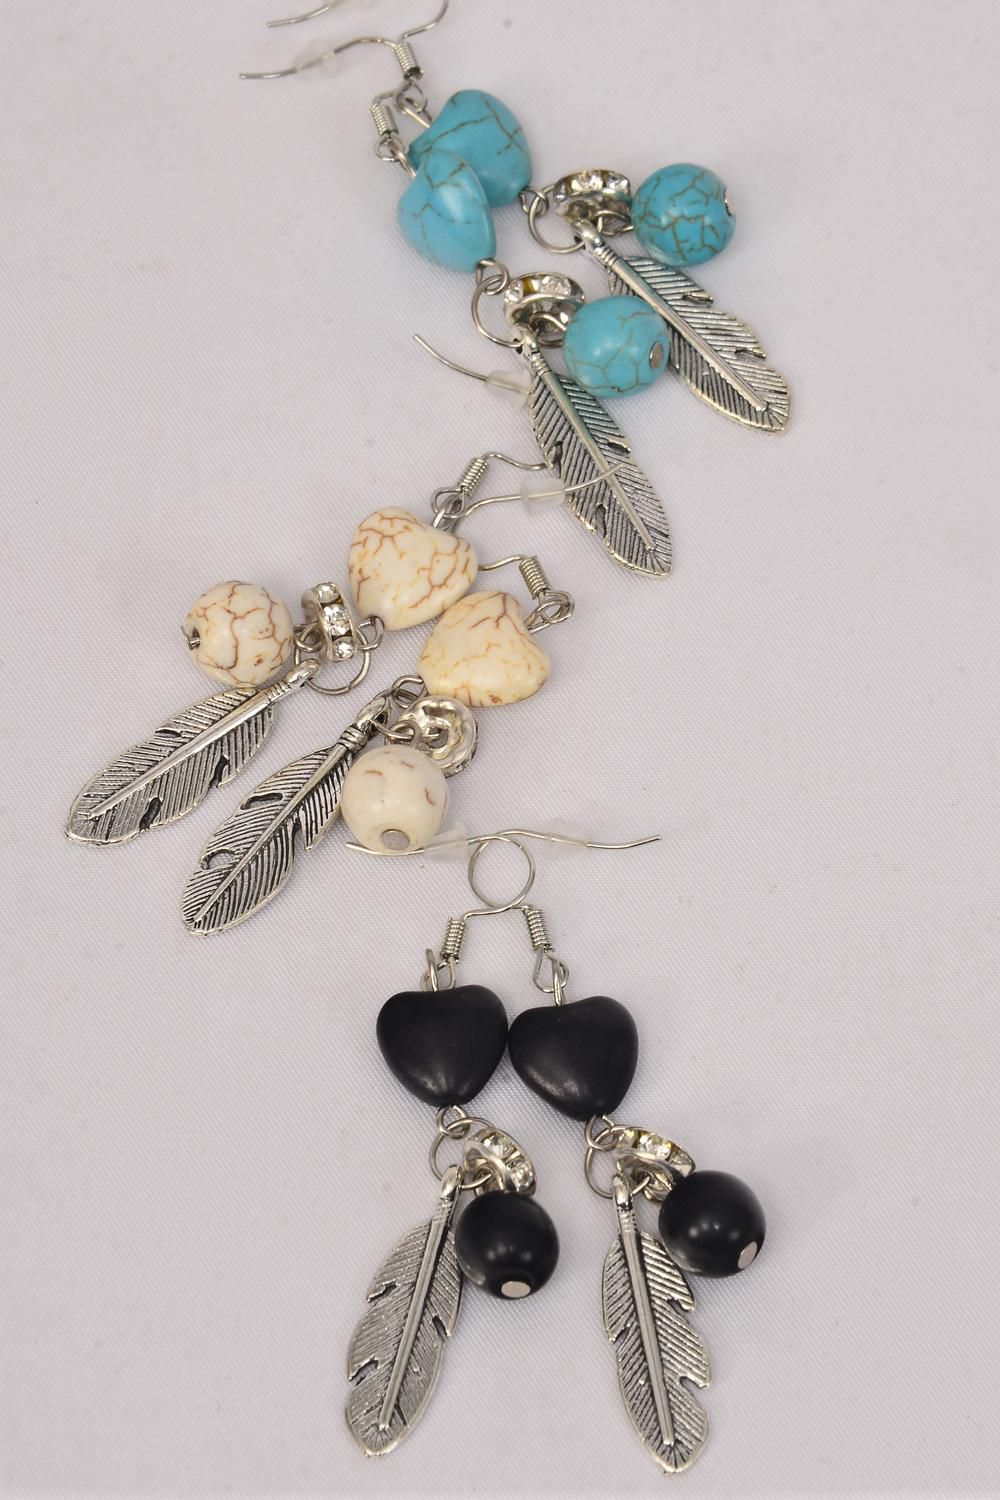 "Earrings Metal Antique Feather & Hearts Semiprecious Stone/DZ **Fish Hook** Size-1.25""x 0.75"" Wide,4 Black,4 Ivory,4 Turquoise Asst,Earring Card & OPP Bag & UPC Code -"